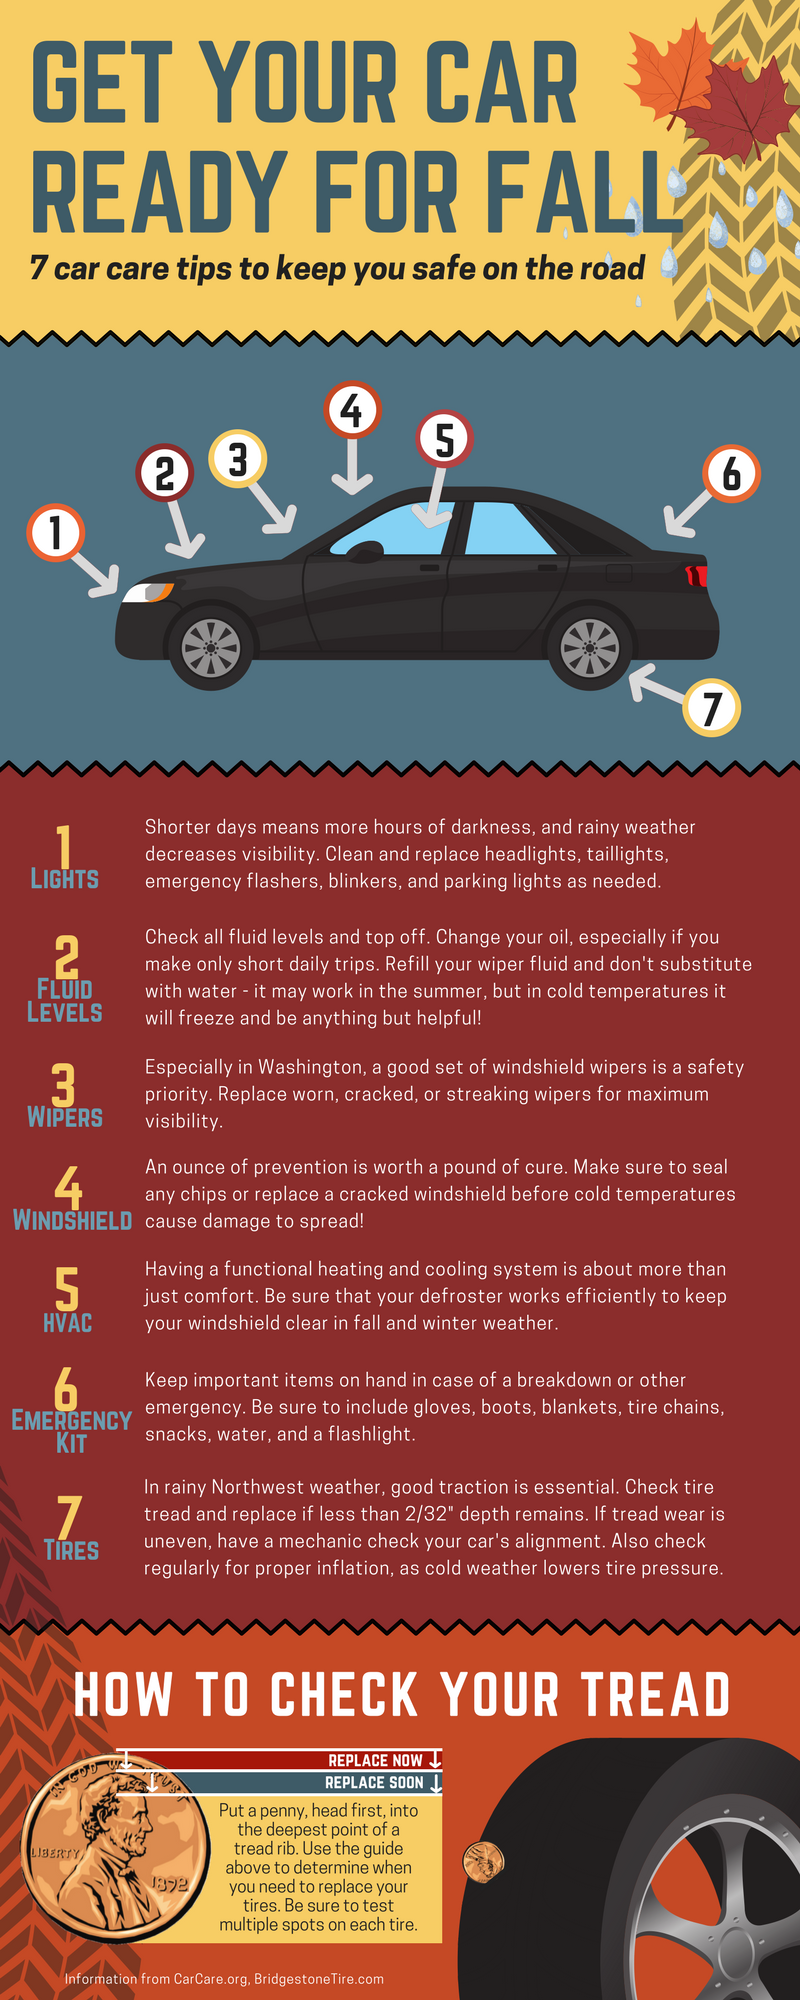 We Ve Compiled A List Of Basic Maintenance And Preparation You Should Consider To Ensure That Your Fall Driving Is As Safe Possible